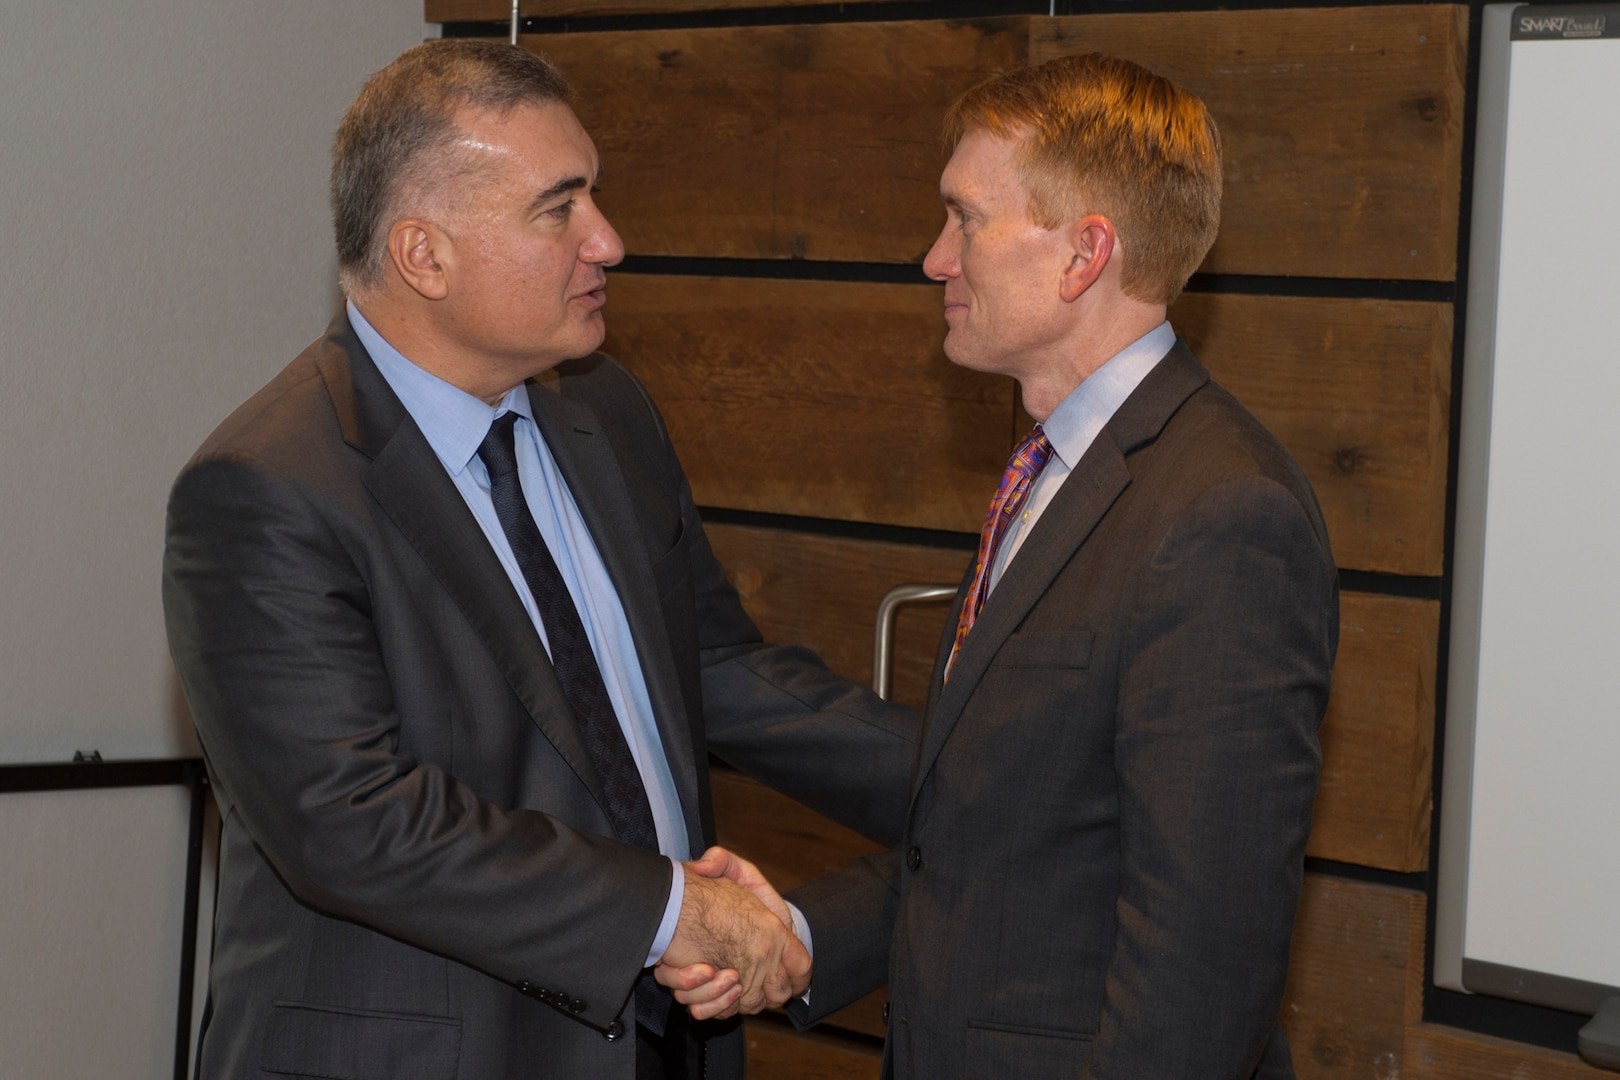 The Azerbaijani Ambassador to the United States, Elin Suleymanov, meets with U.S. Sen. James Lankford, who represents the State of Oklahoma.